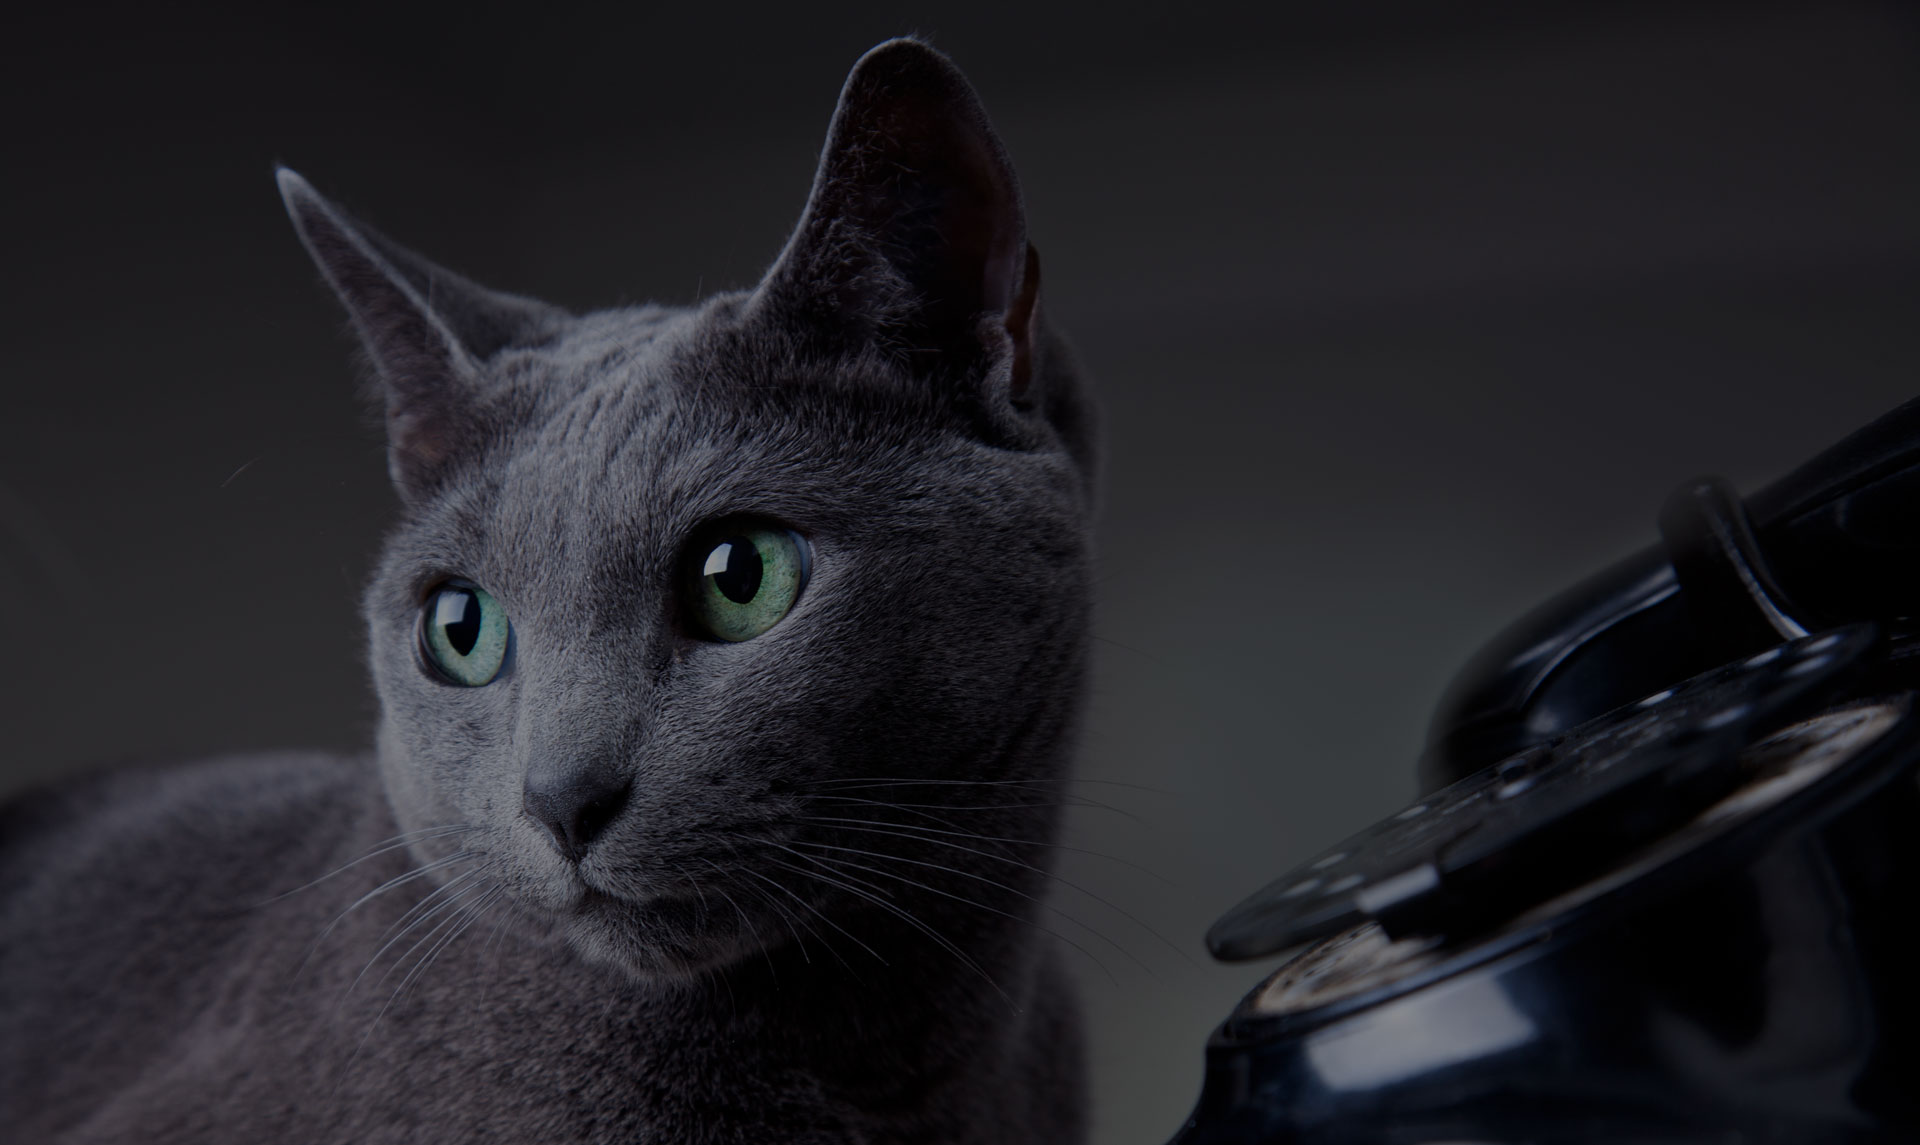 Russian Blue Cat portrait with face close up